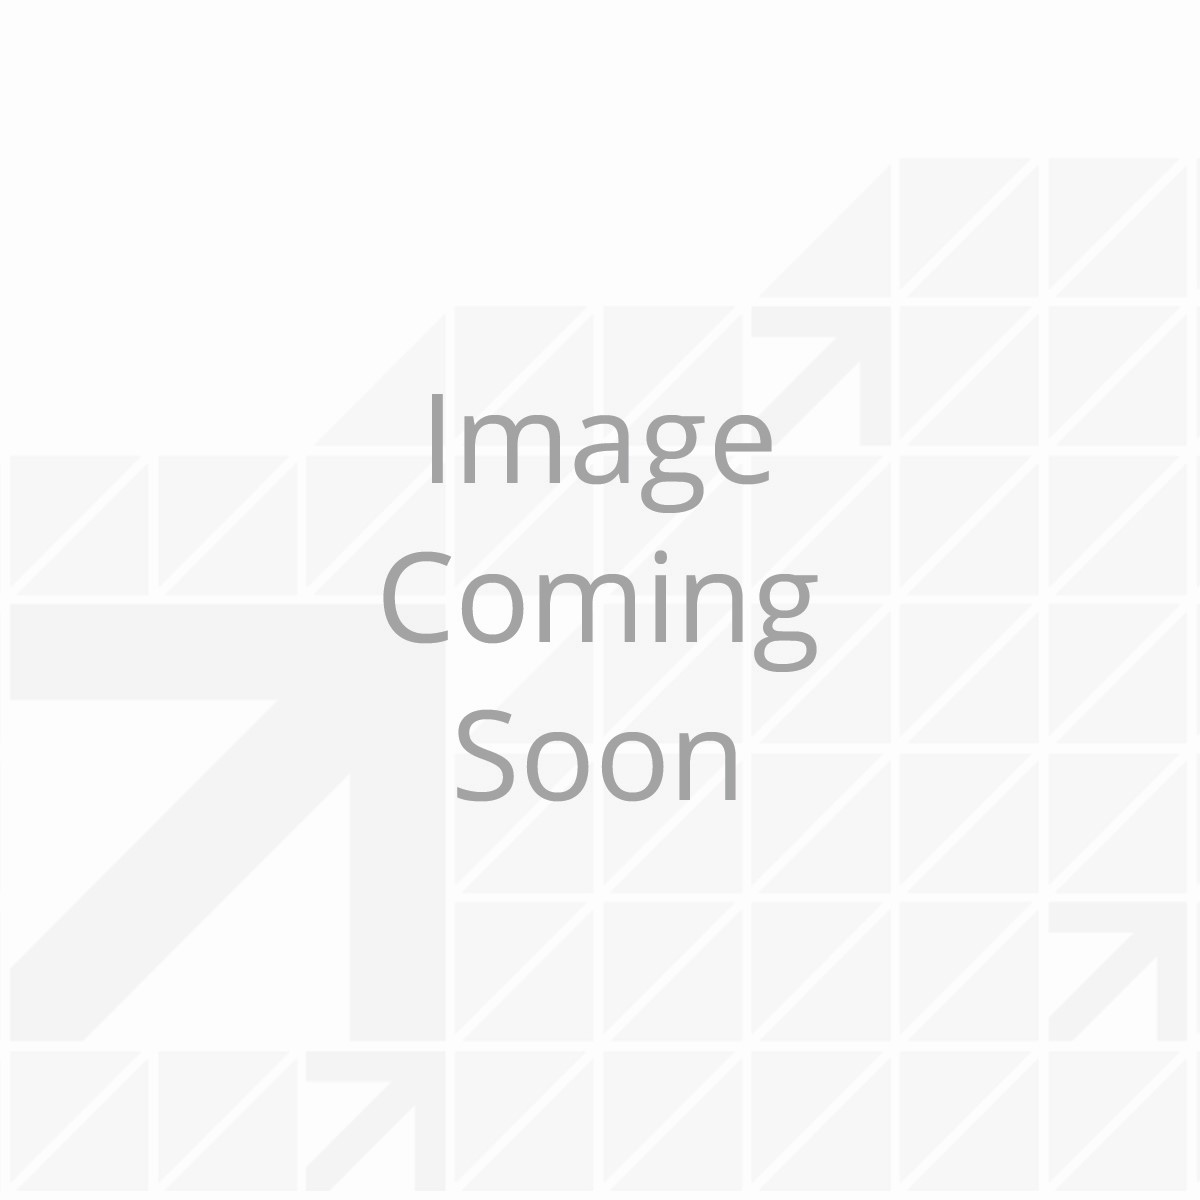 Lippert on Google Plus